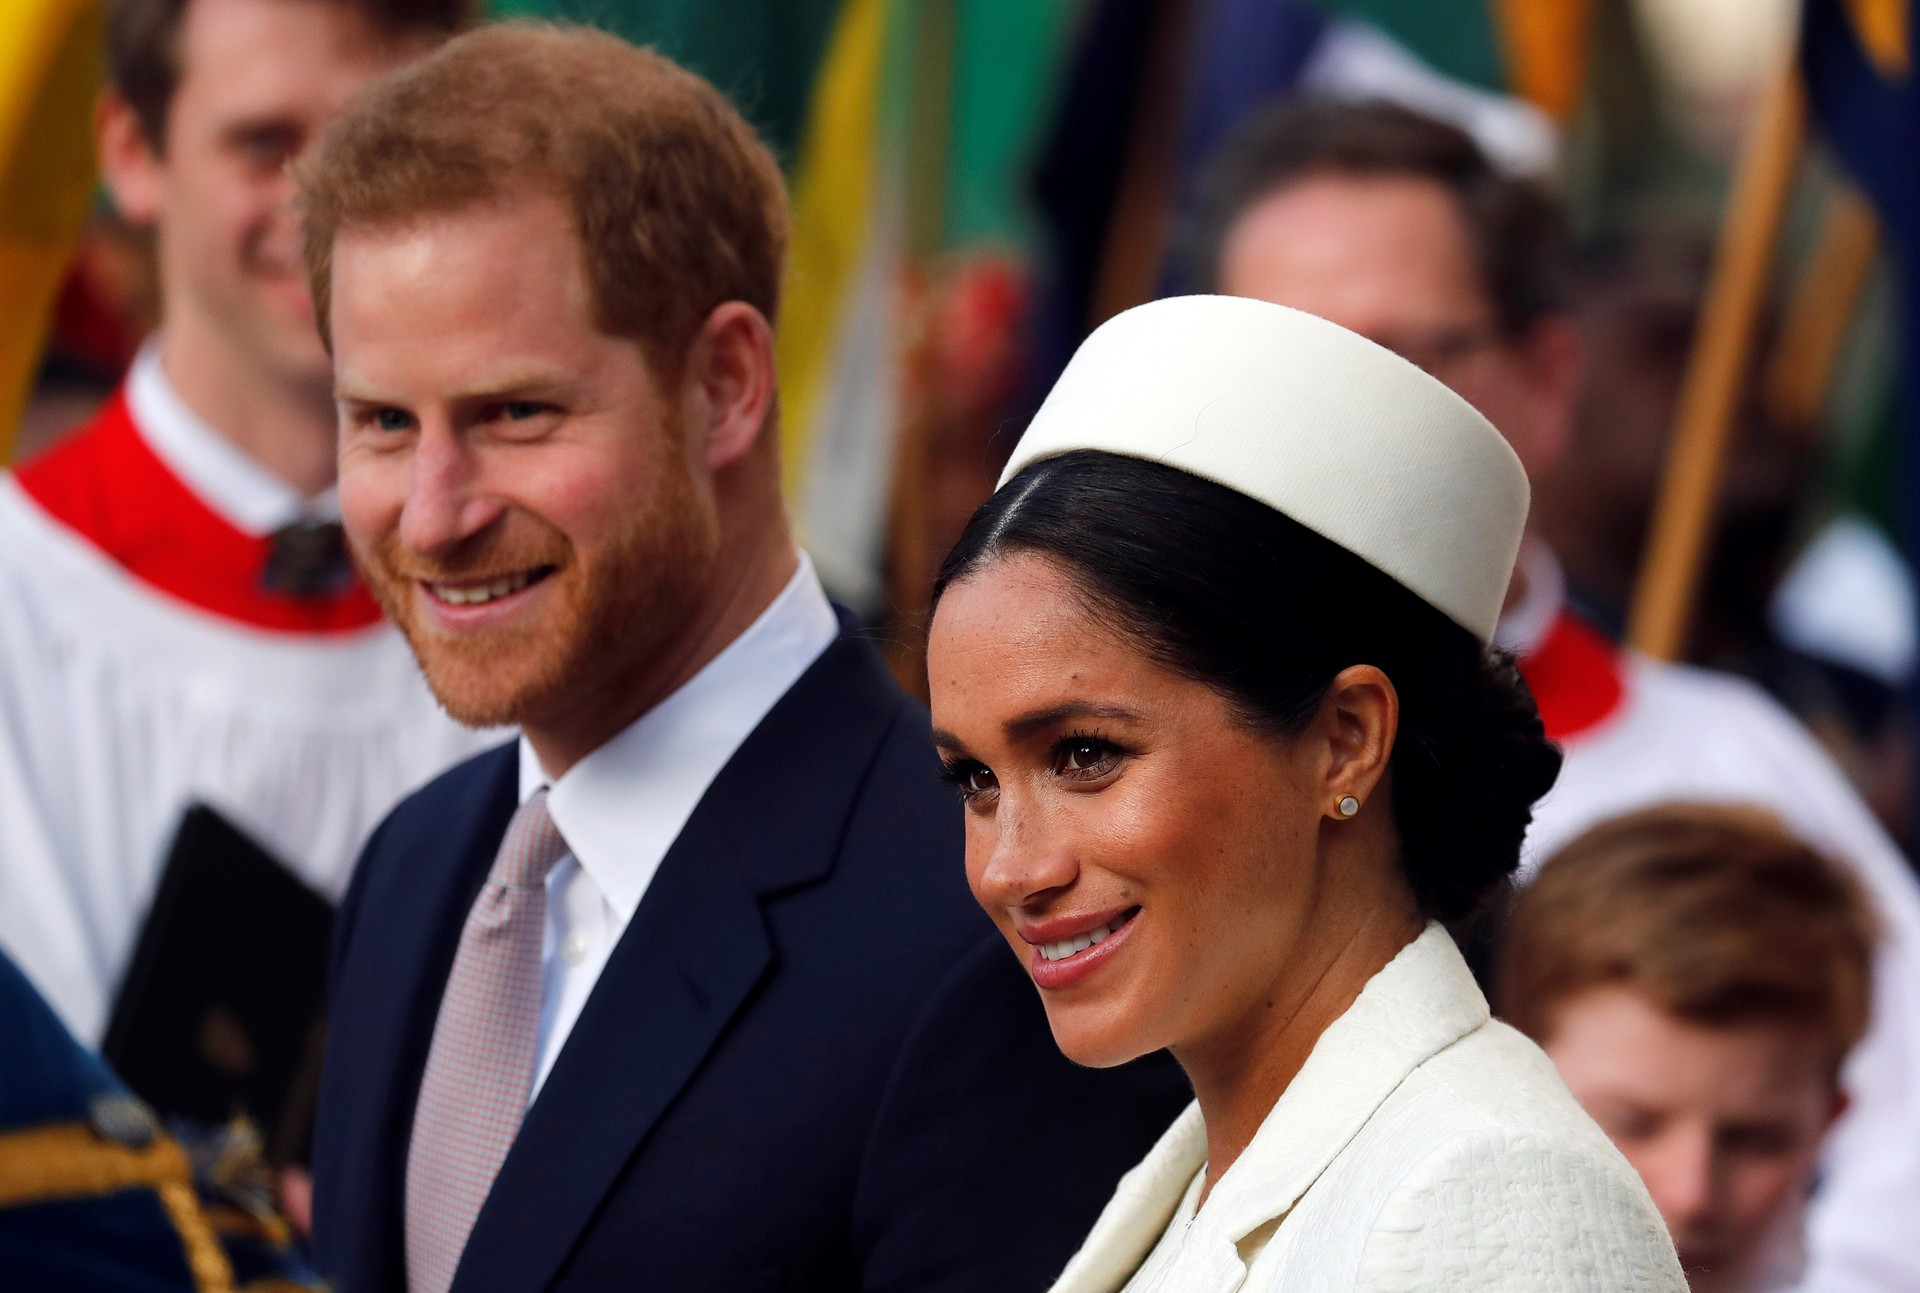 No going back: The decision that could spell permanent exile for Harry and Meghan